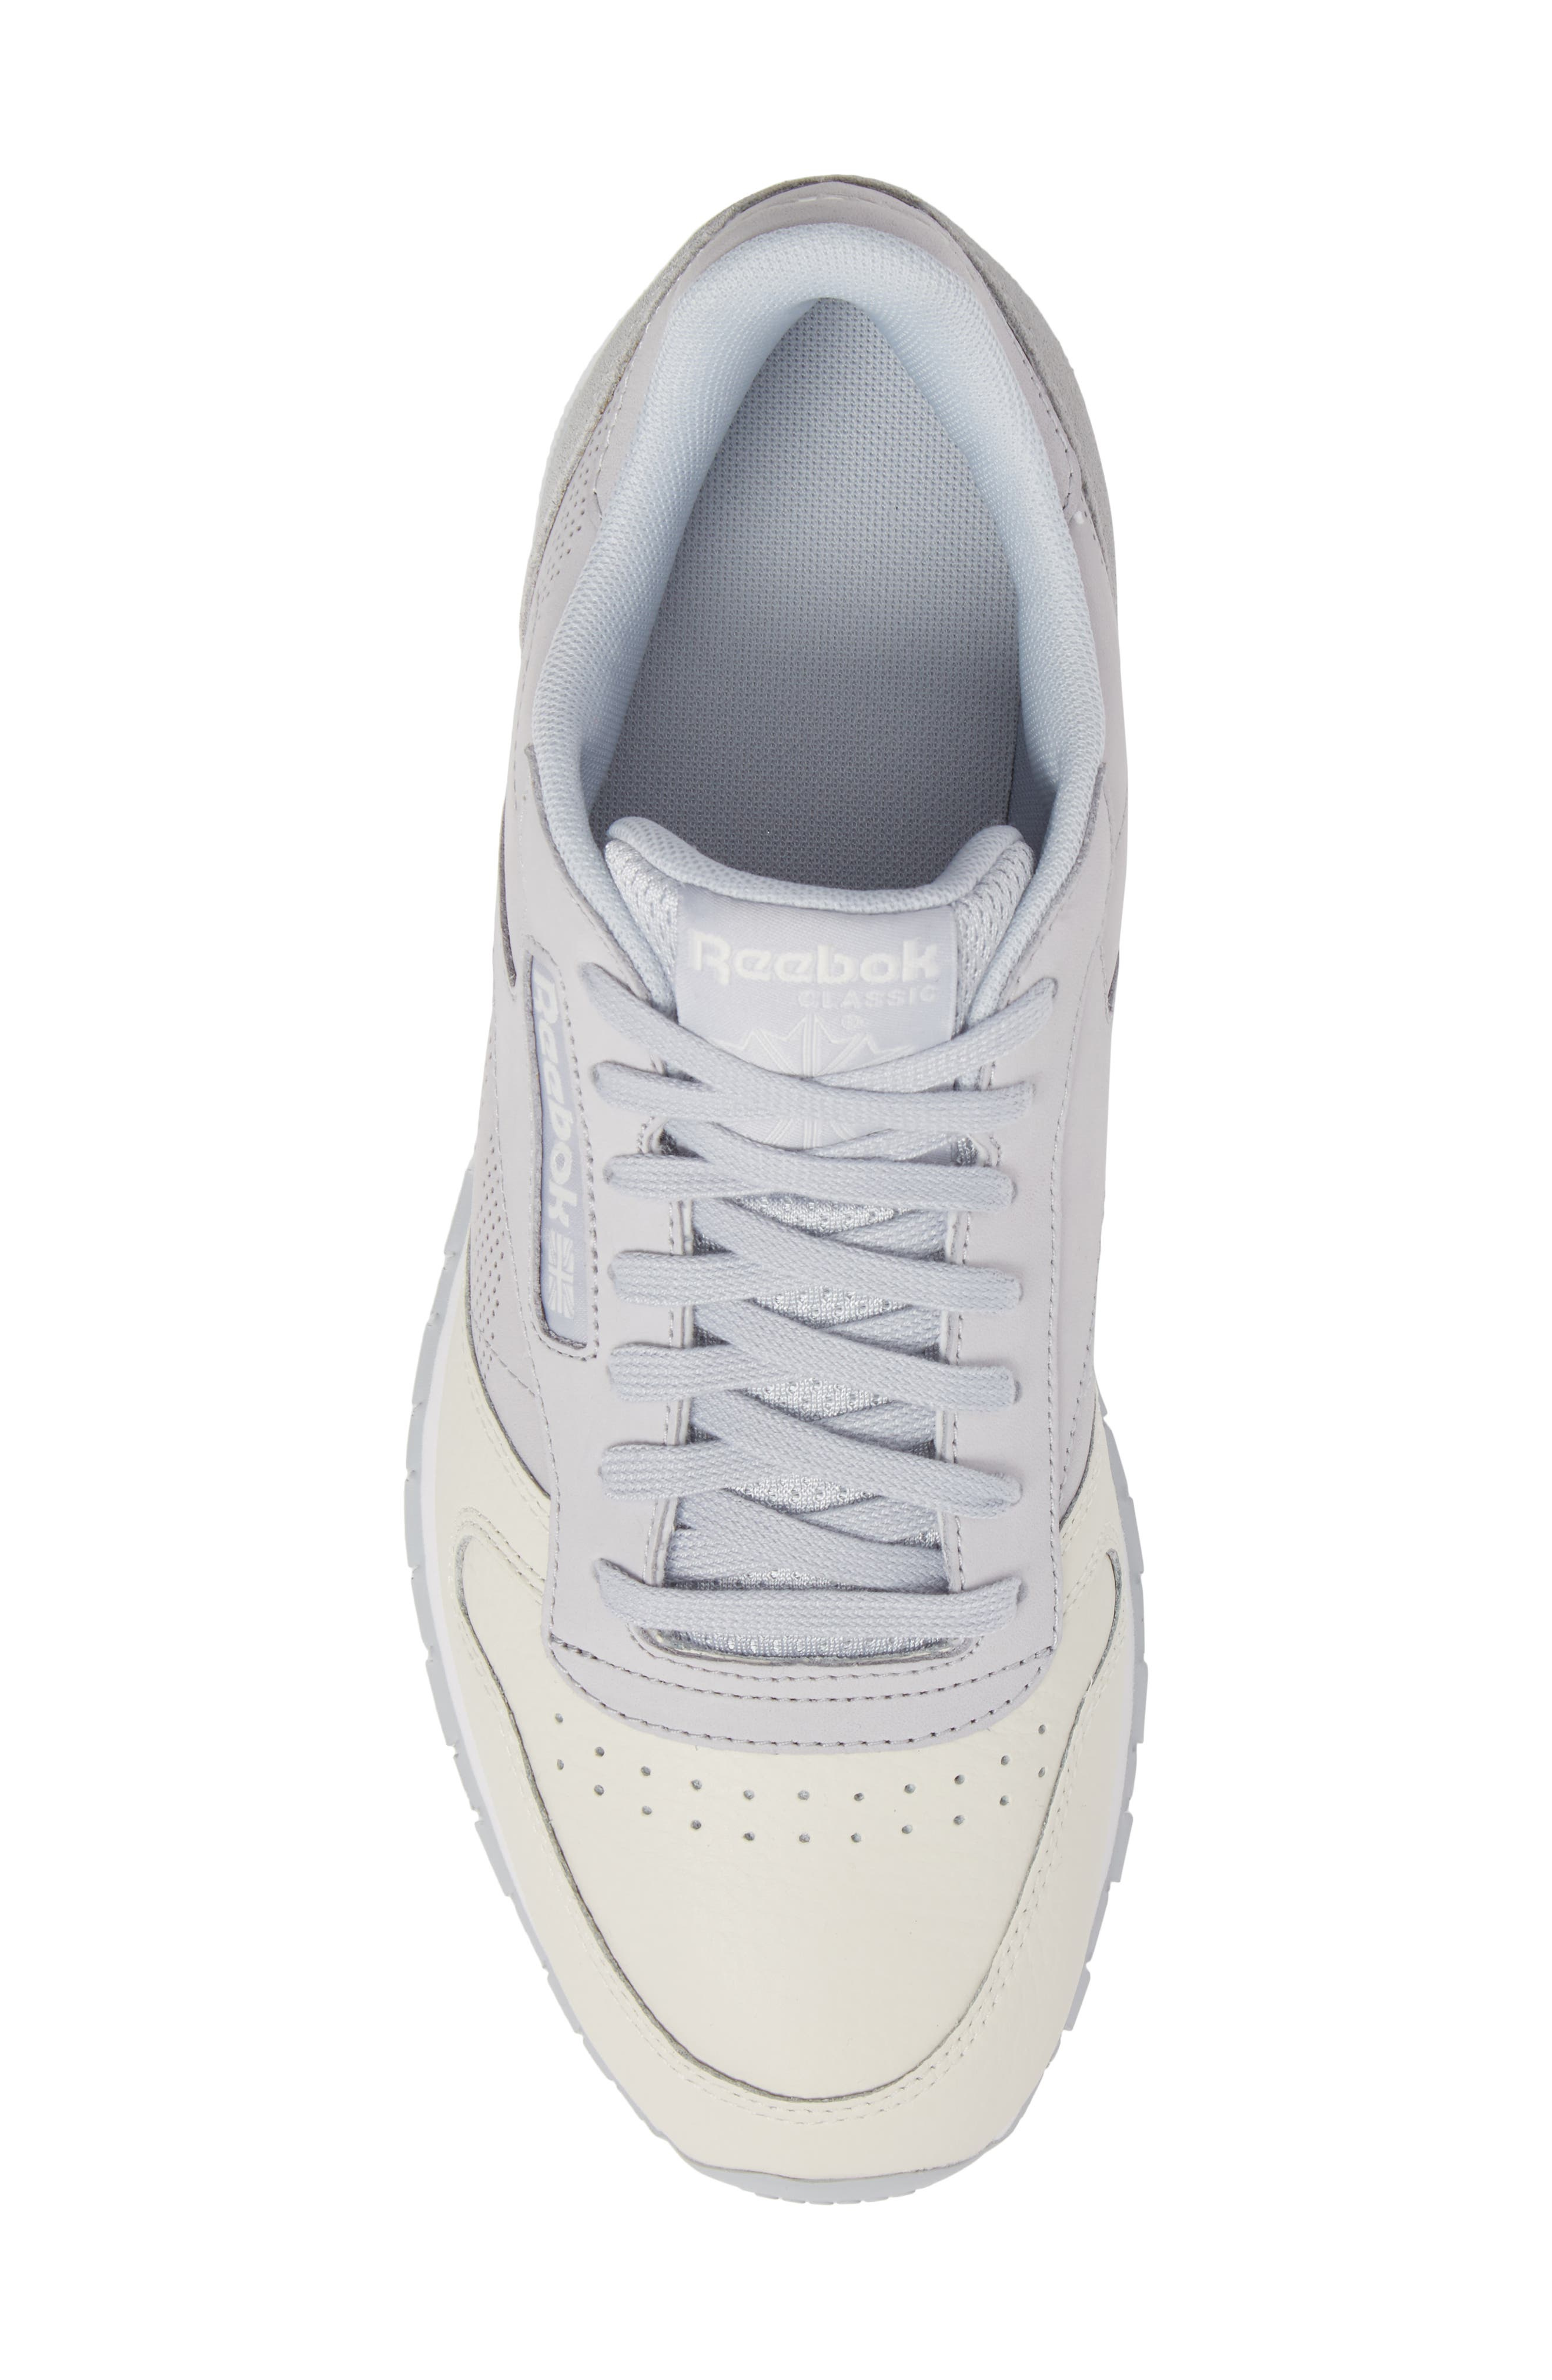 Classic Leather UE Sneaker,                             Alternate thumbnail 5, color,                             020